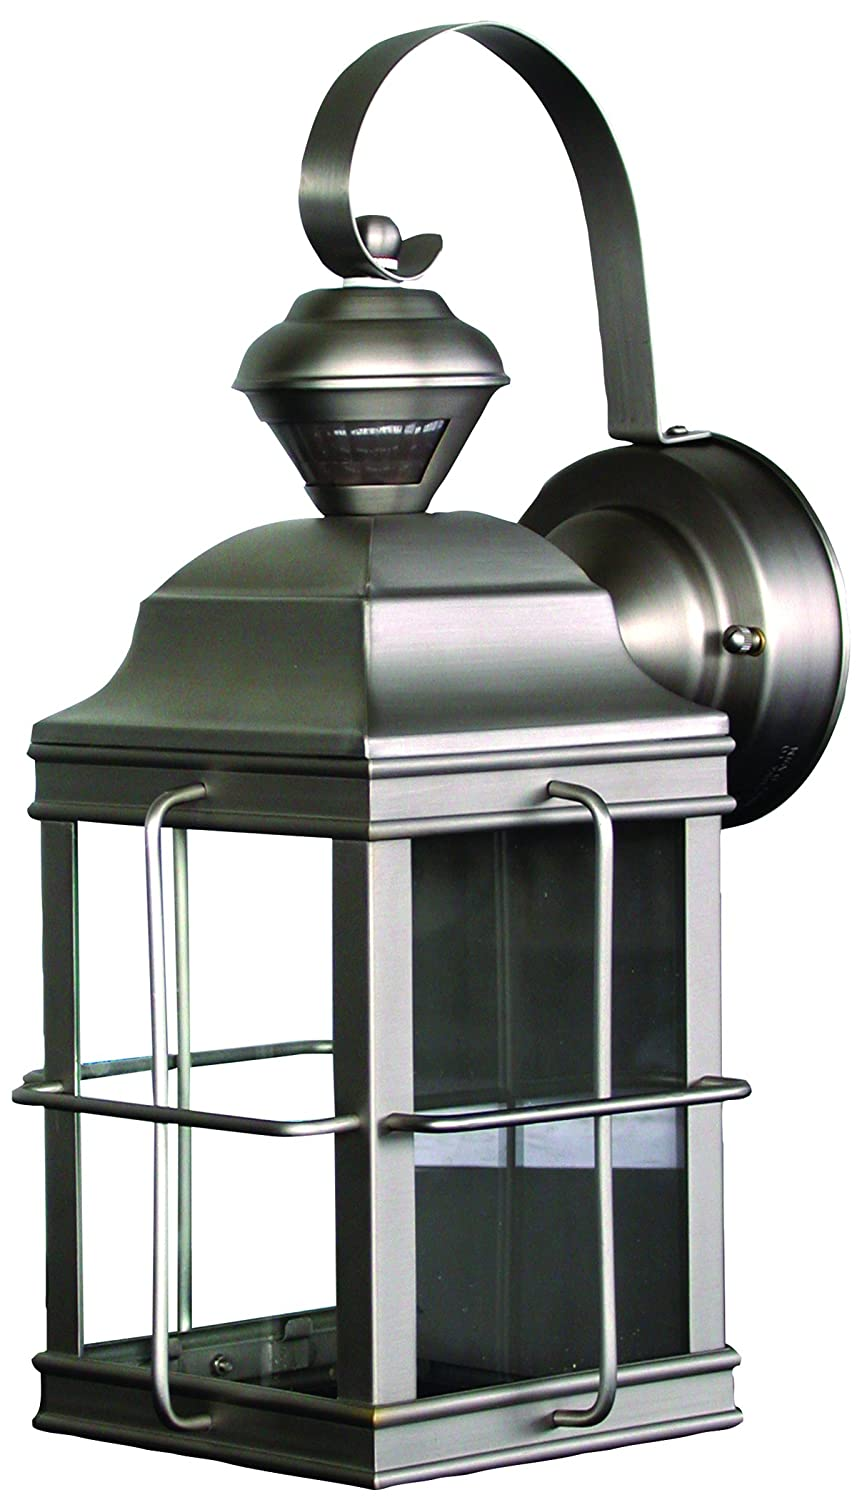 Heath Zenith Outdoor Lighting Heath zenith hz 4144 nb motion sensing 4 sided new england style heath zenith hz 4144 nb motion sensing 4 sided new england style lantern brushed nickel outdoor lighting amazon workwithnaturefo